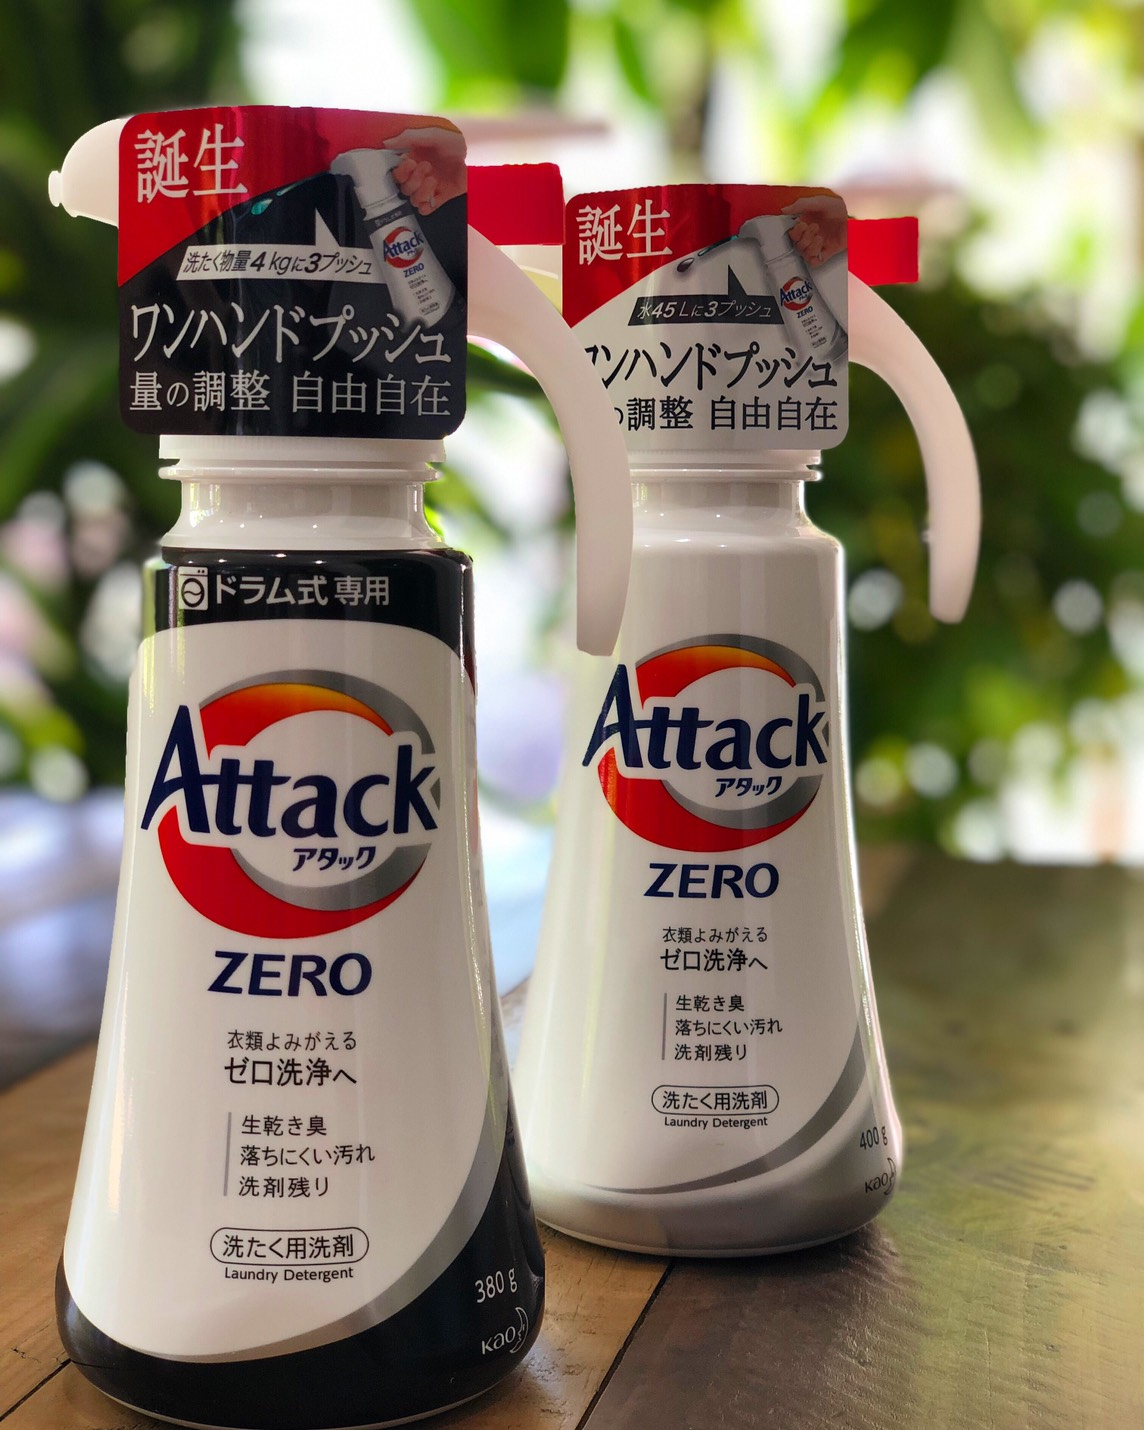 AttackZero